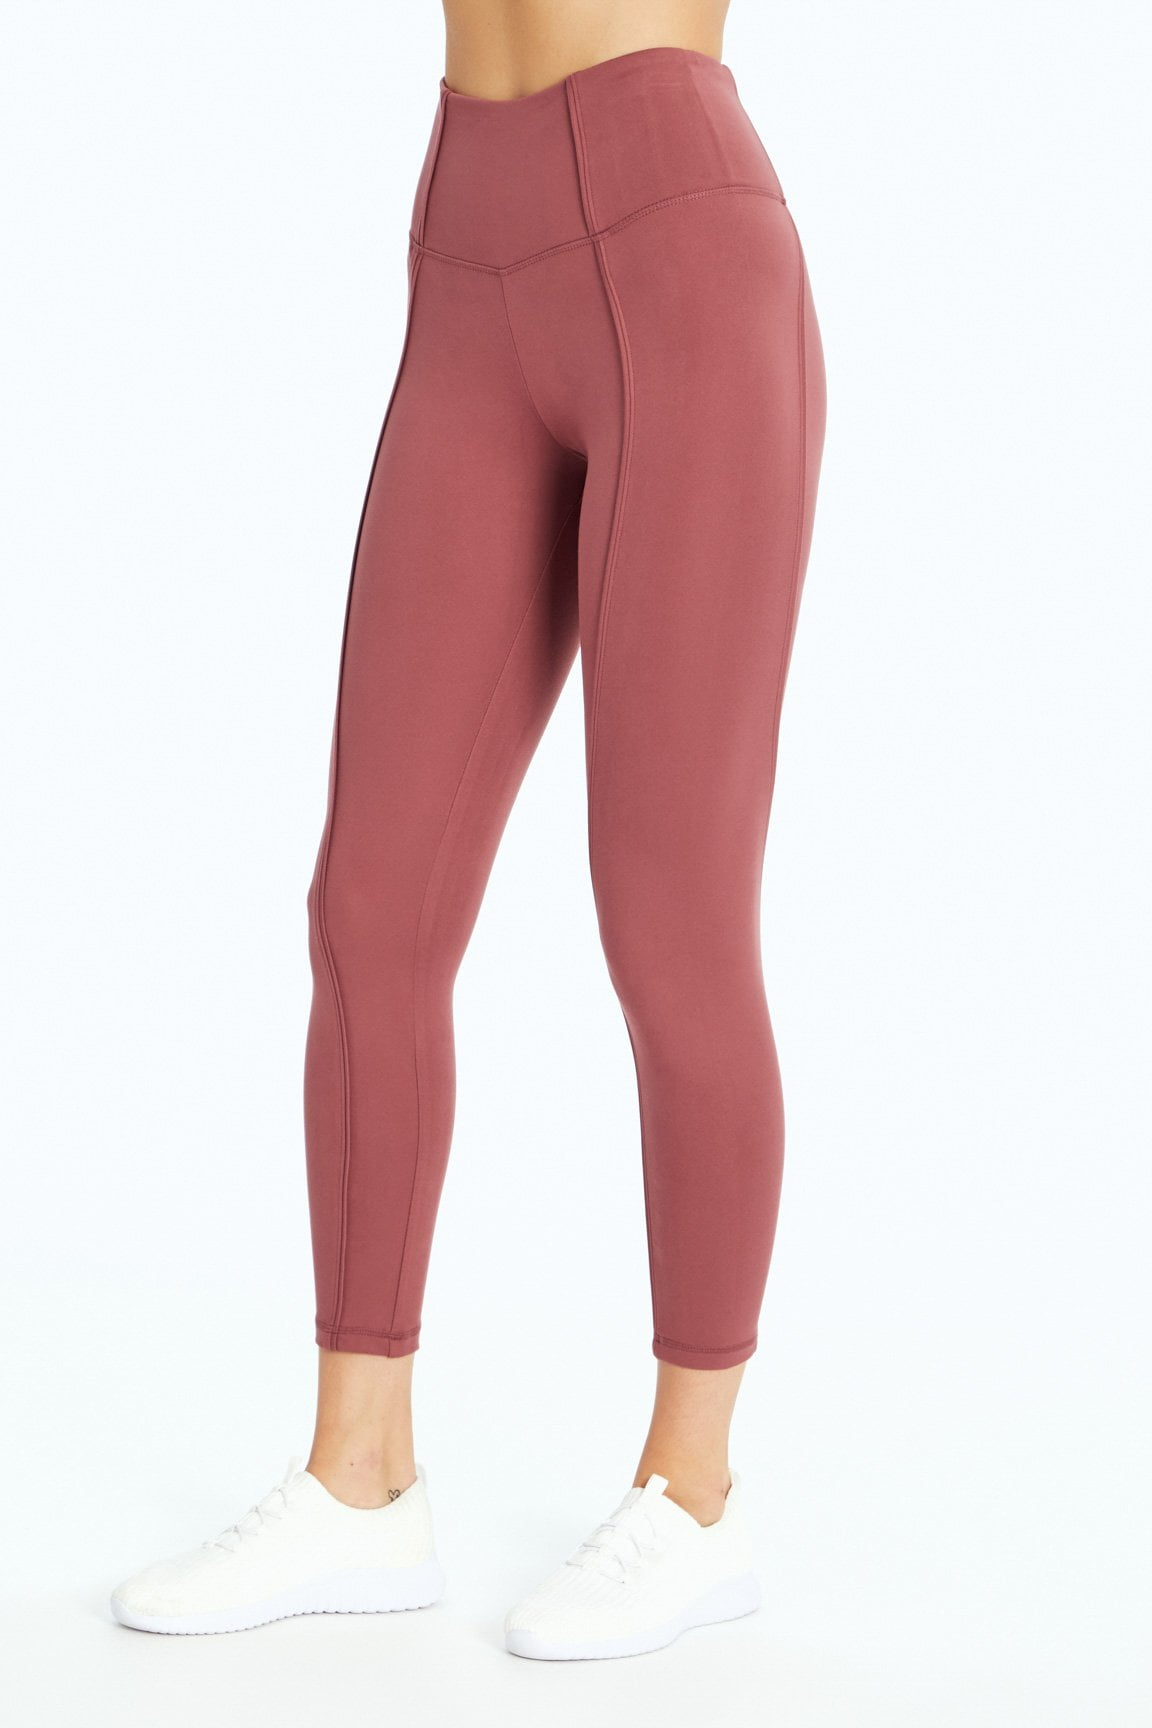 Olivia Ankle Legging (Crushed Berry)